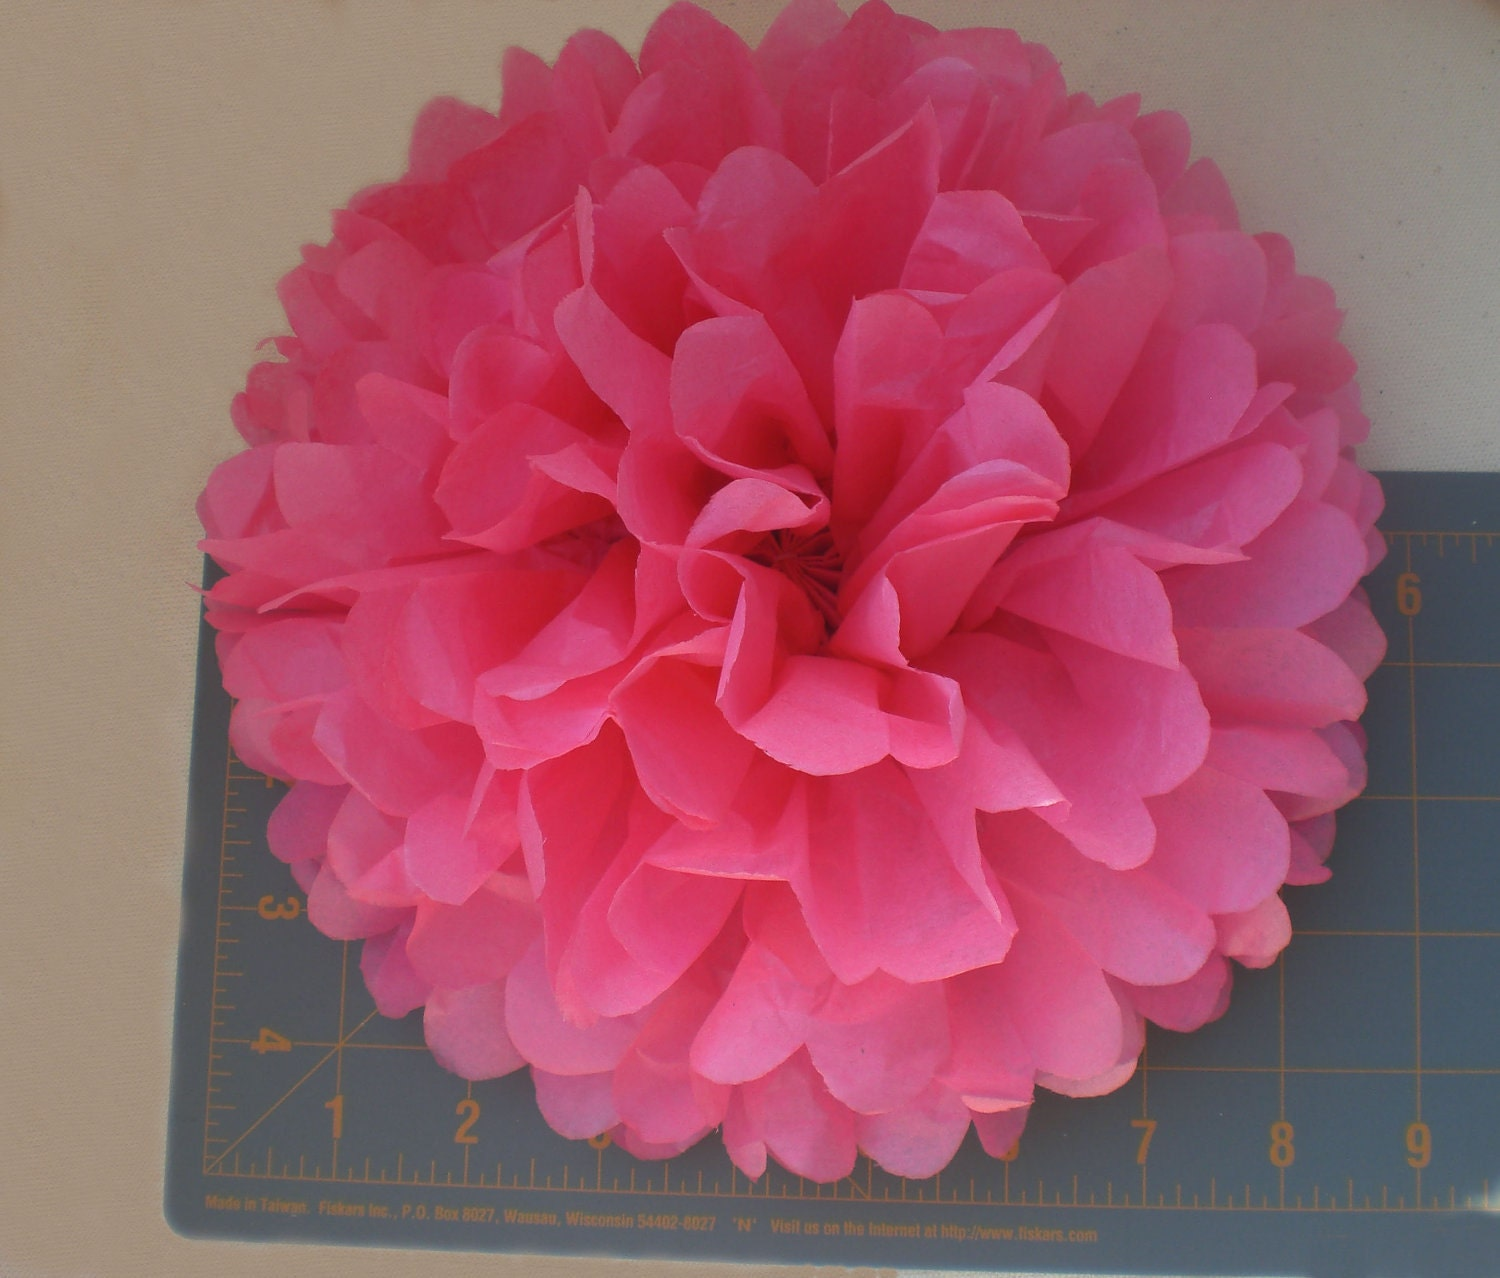 How to make large tissue paper flowers coursework writing service how to make large tissue paper flowers tissue paper flowers are colorful and festive they are mightylinksfo